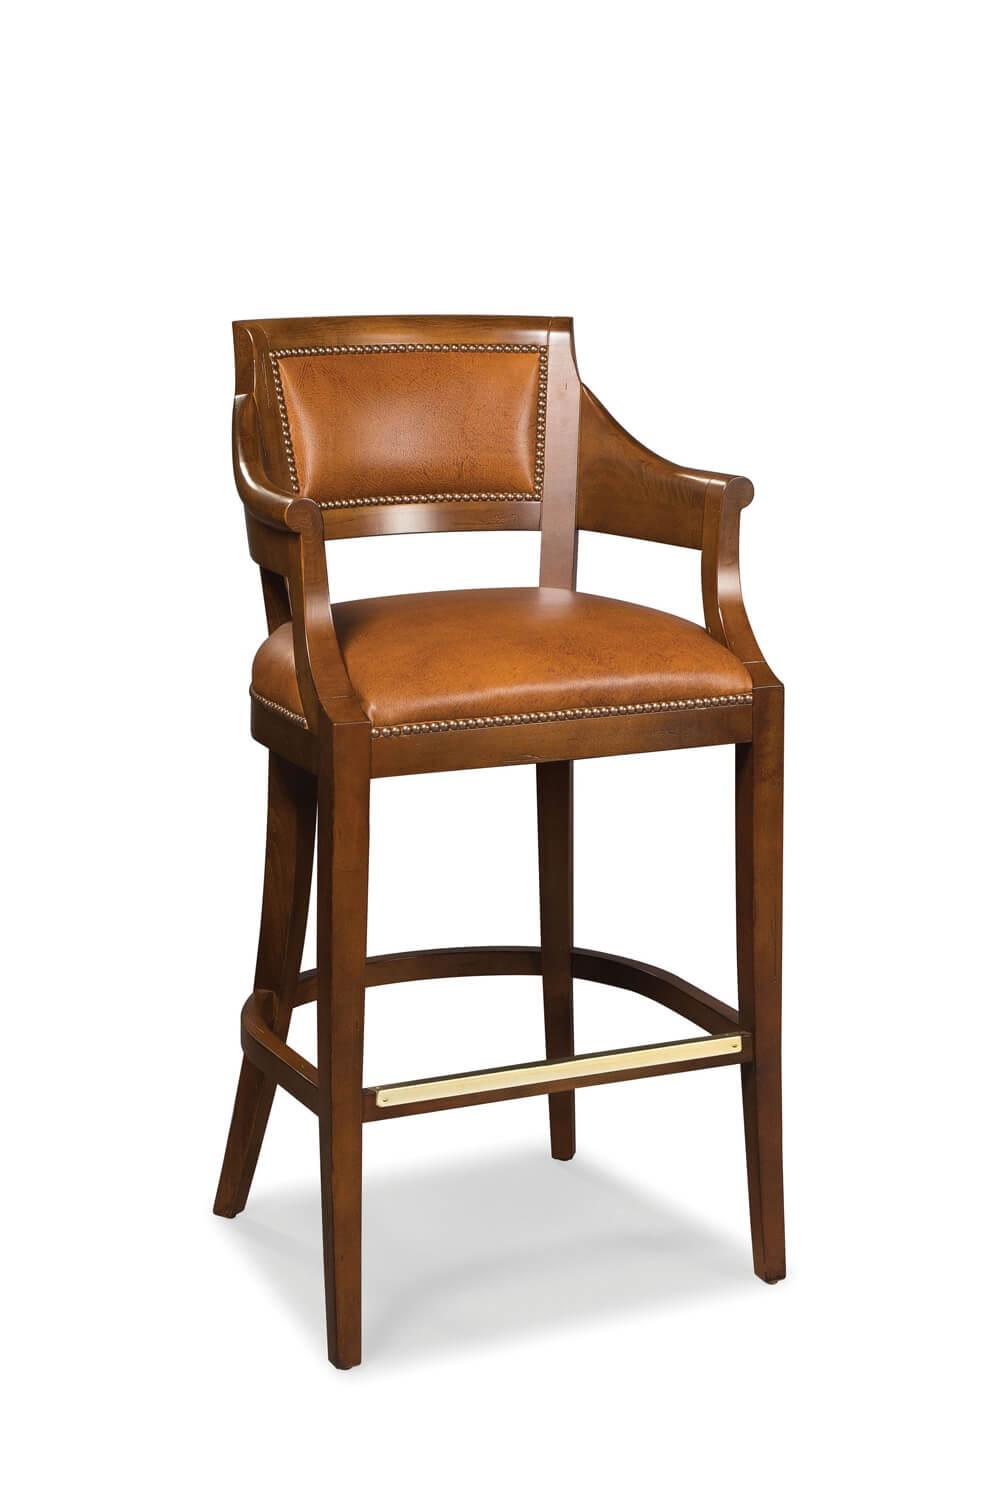 Fairfield Chair S Gilrow Bar Stool With Arms And Nailhead